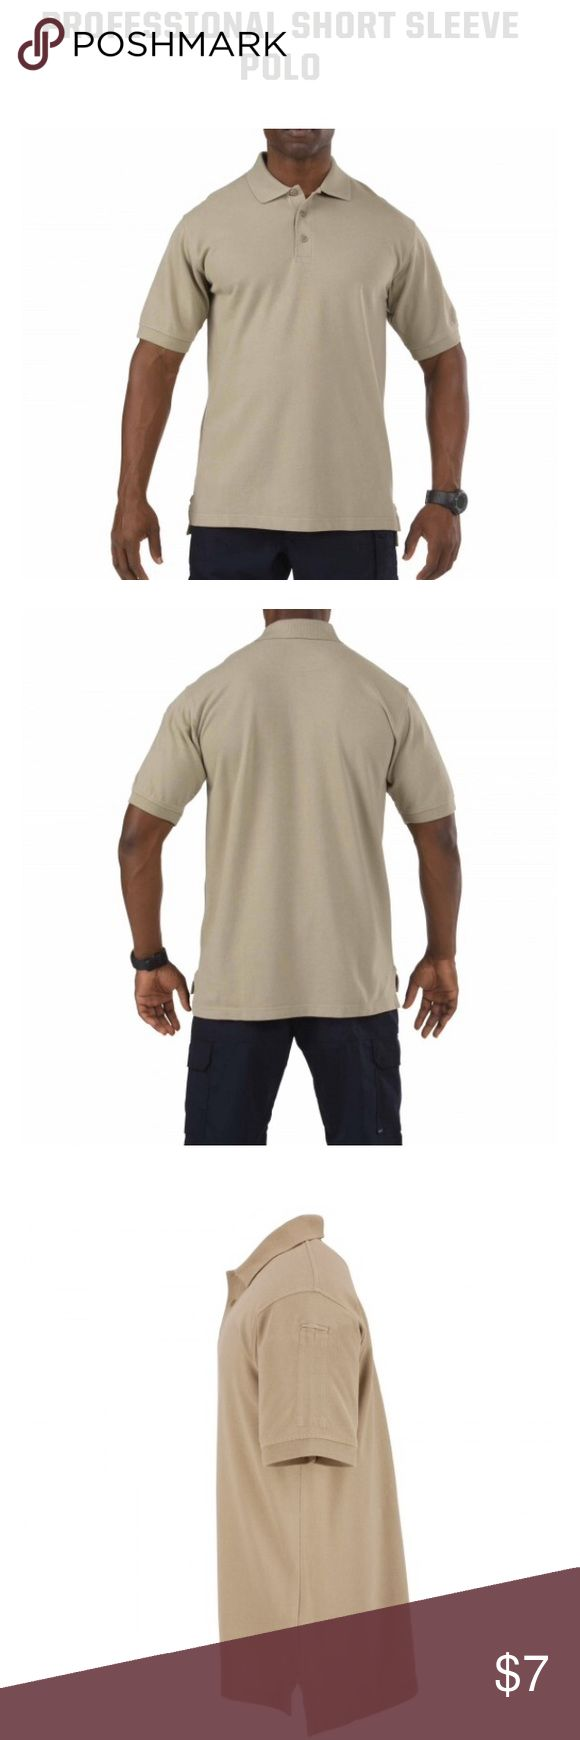 Men's 5.11 Tactical Series tan Polo-size Large Men's 5.11 Tactical Series tan short sleeve Polo-size Large. First photos Are shirt new- mine is worn but no marks & in really good condition!! 5.11 Tactical Shirts Polos